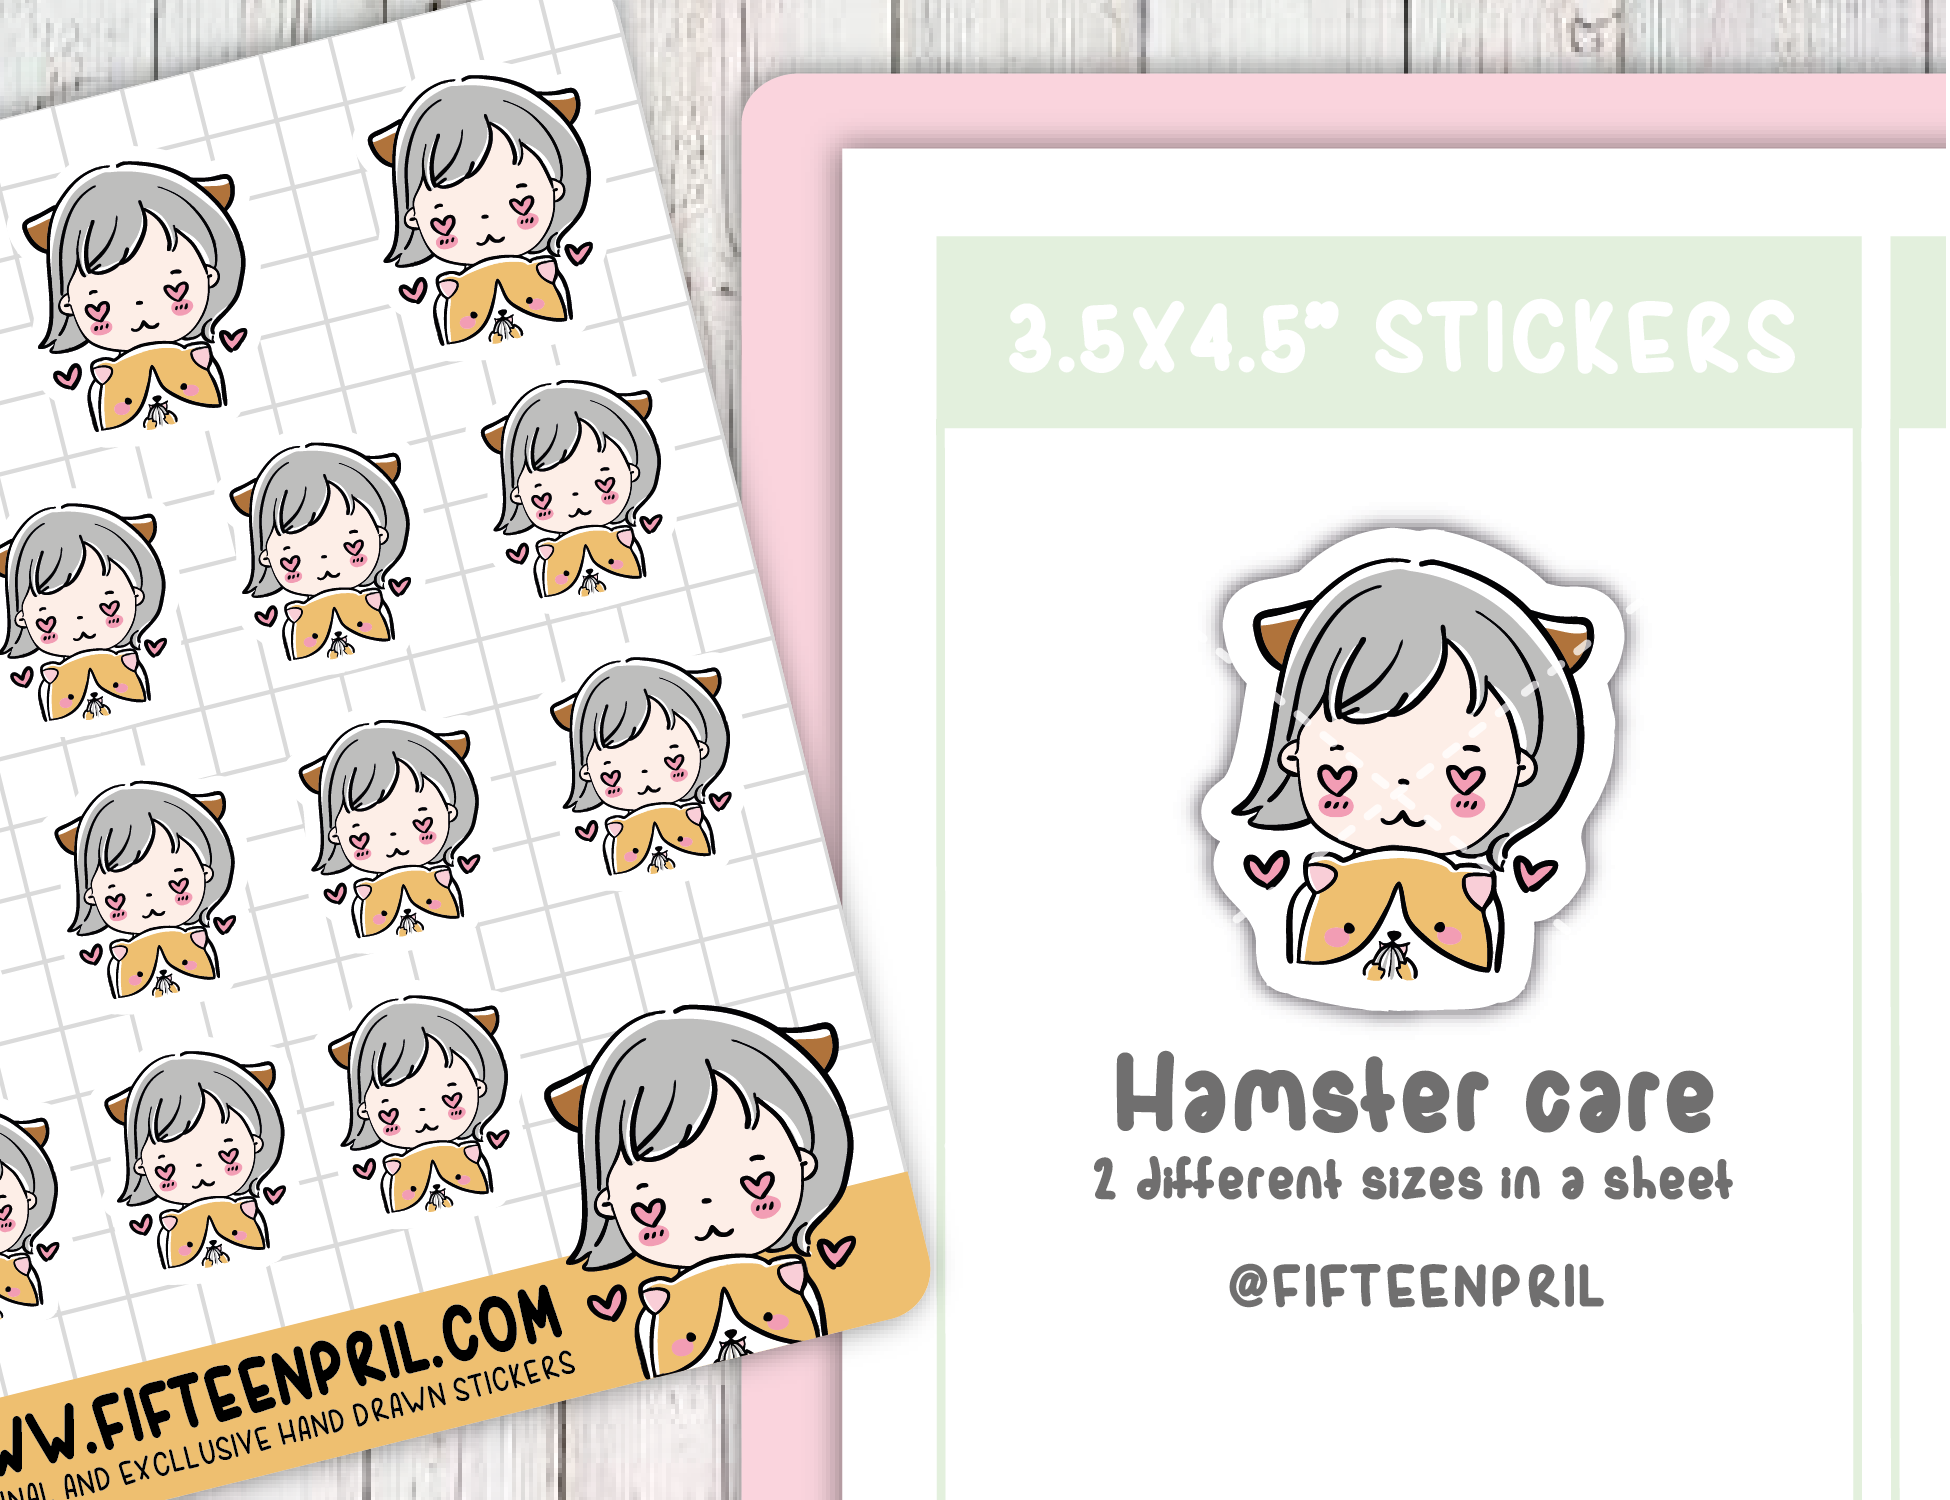 F079-Hamster care Foxigirl sticker